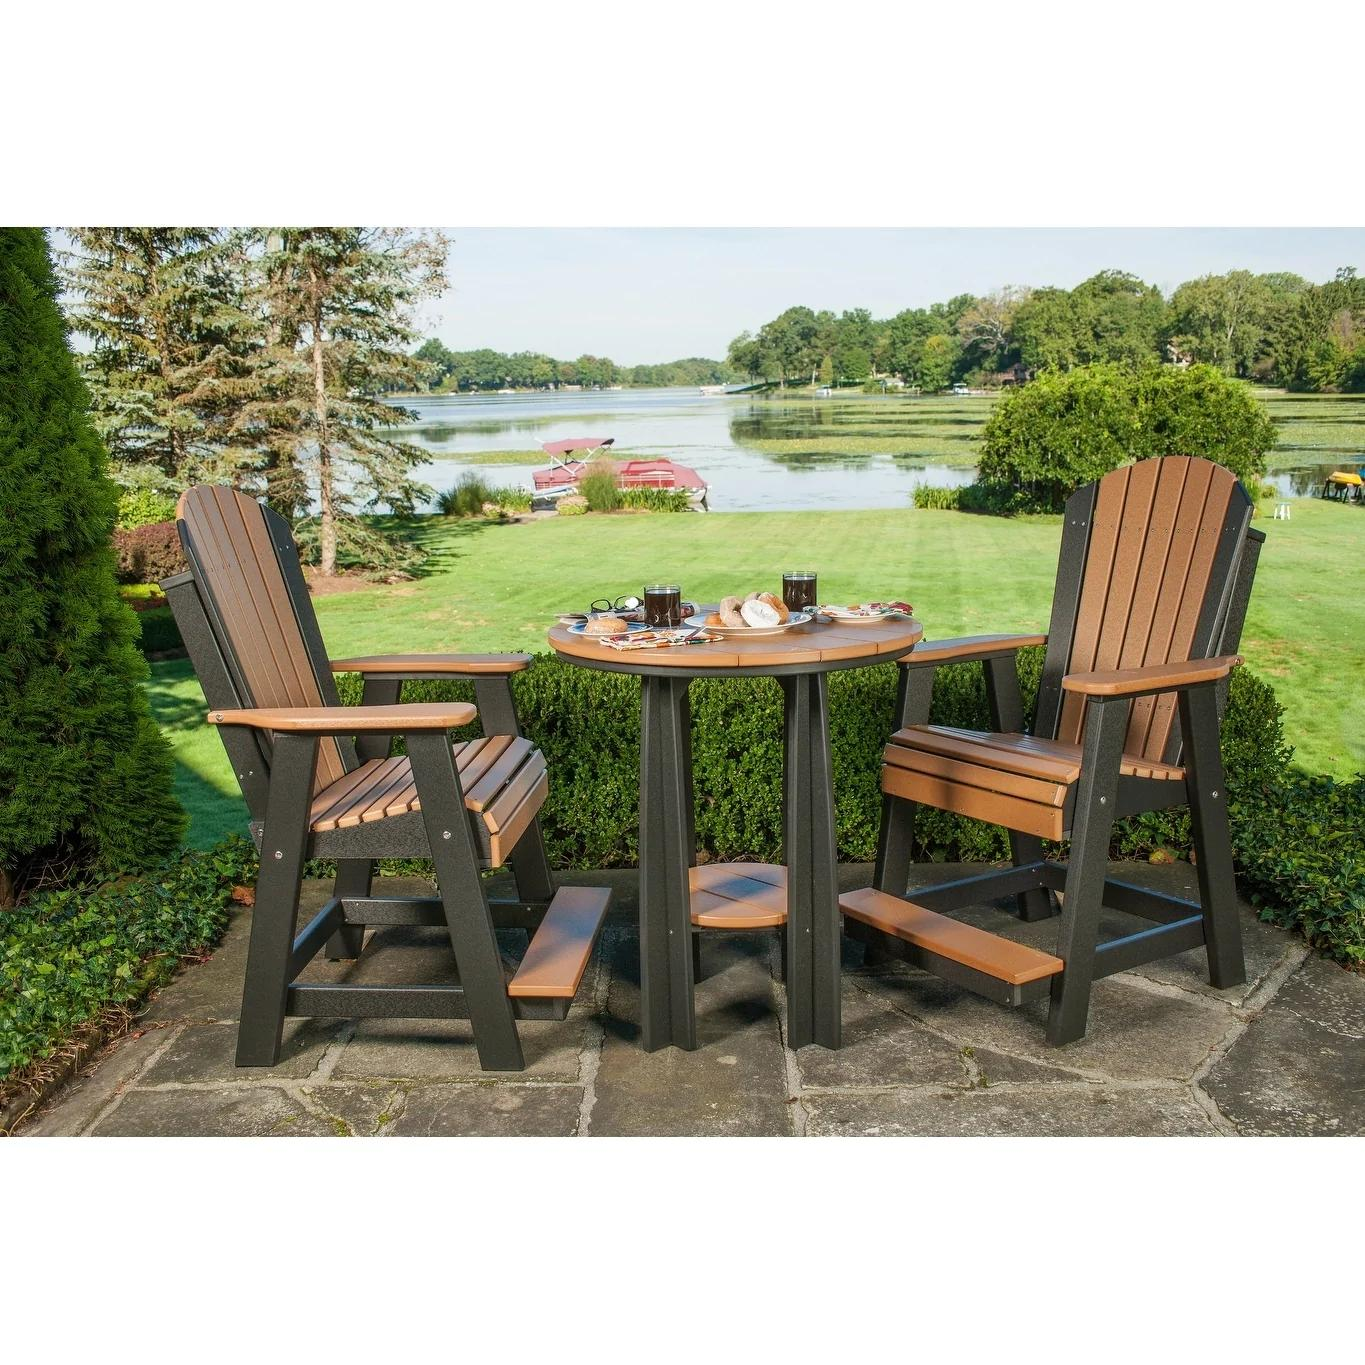 Outdoor Balcony Table Set - Table and 2 Chairs